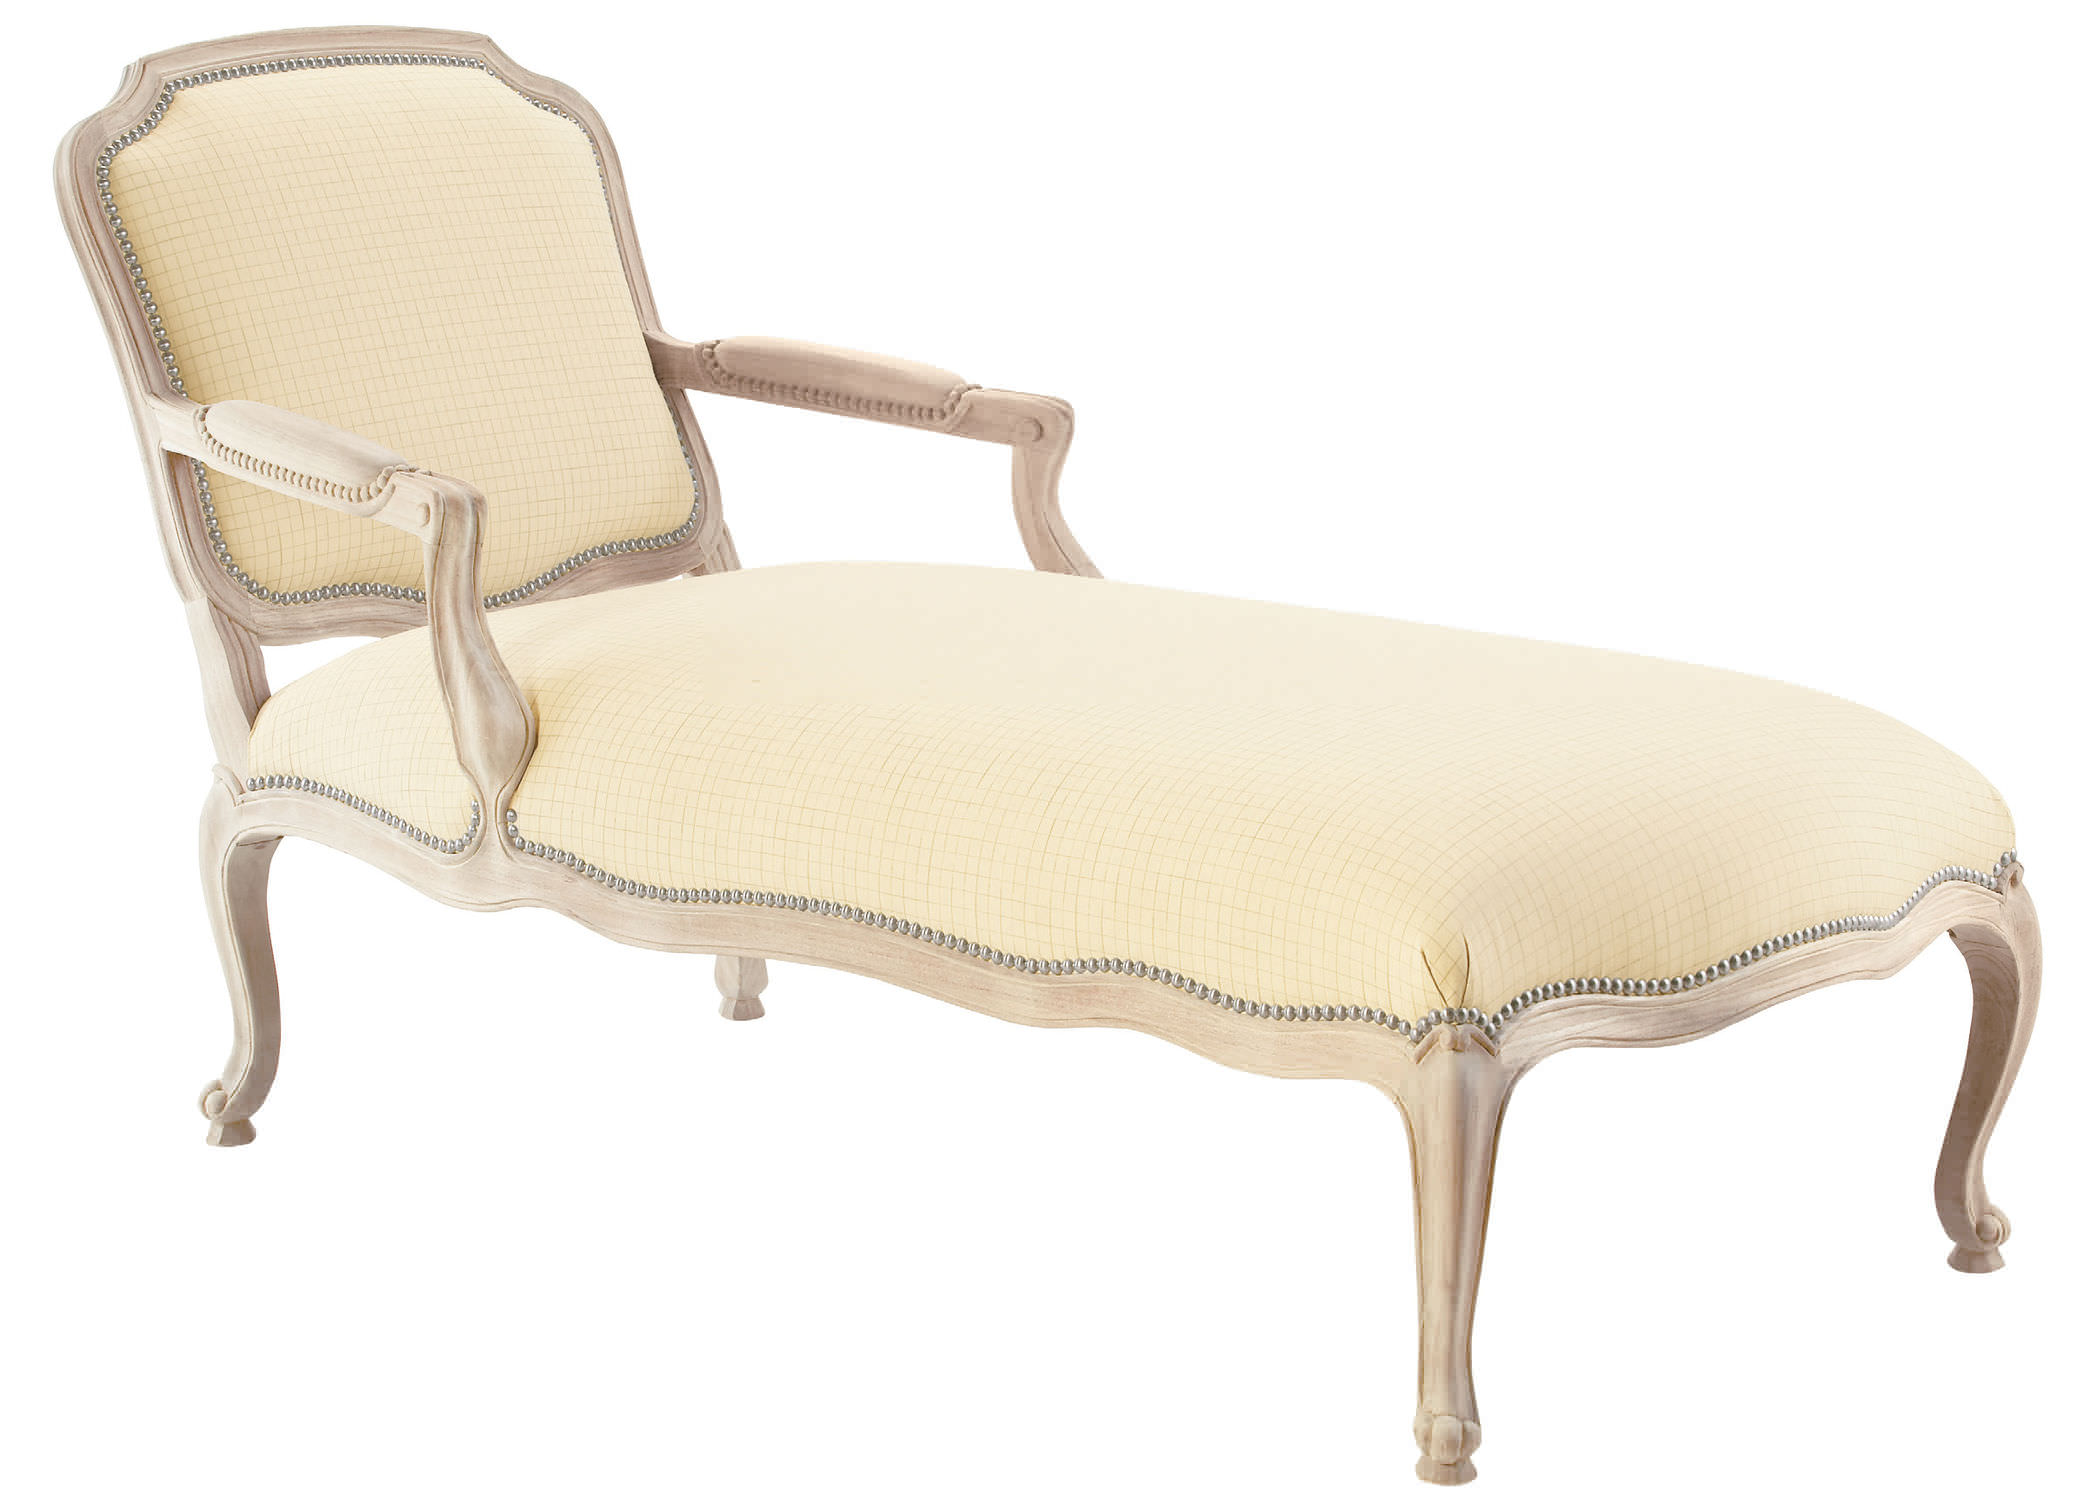 Teak chaise longue LOUIS SOLEIL by John Hutton SUTHERLAND